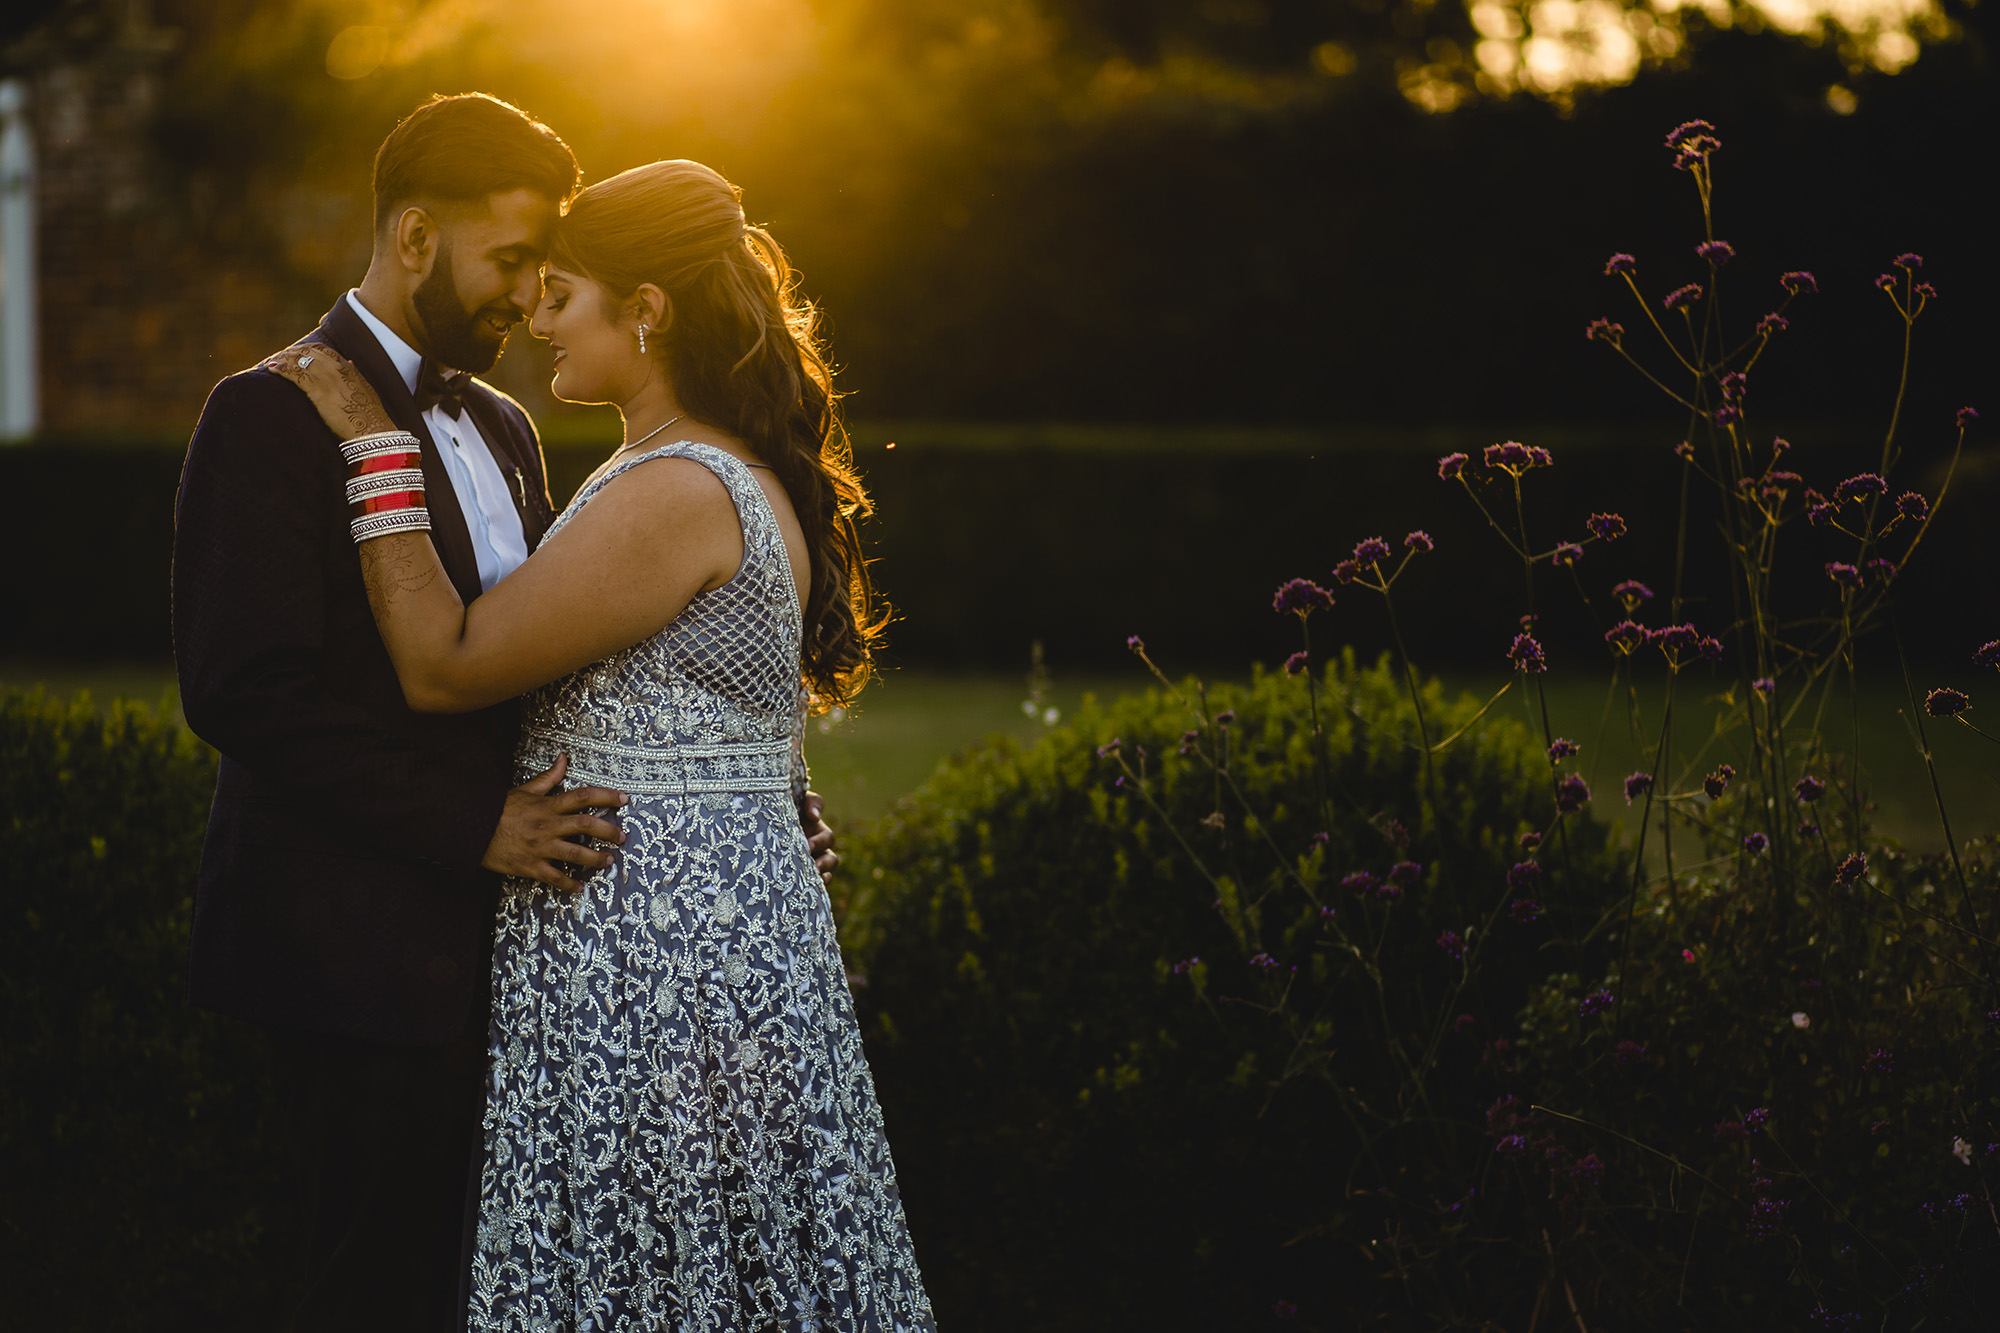 golden hour flair couple portrait with bride and groom